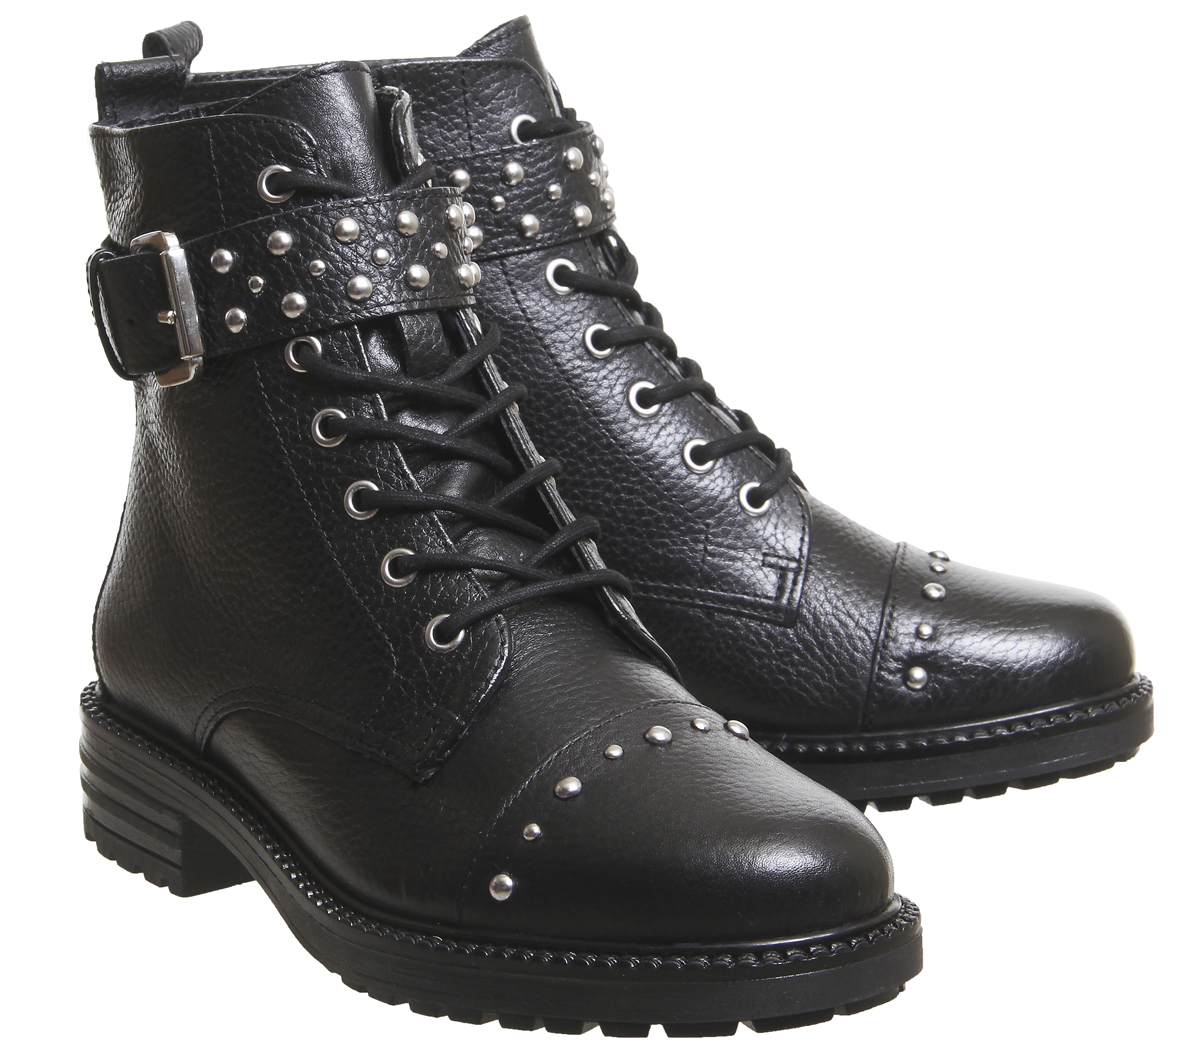 bee26f9f7ab Sentinel Womens Office Alpaca Stud Detail Lace Up Biker Boots Black Leather  Silver Studs